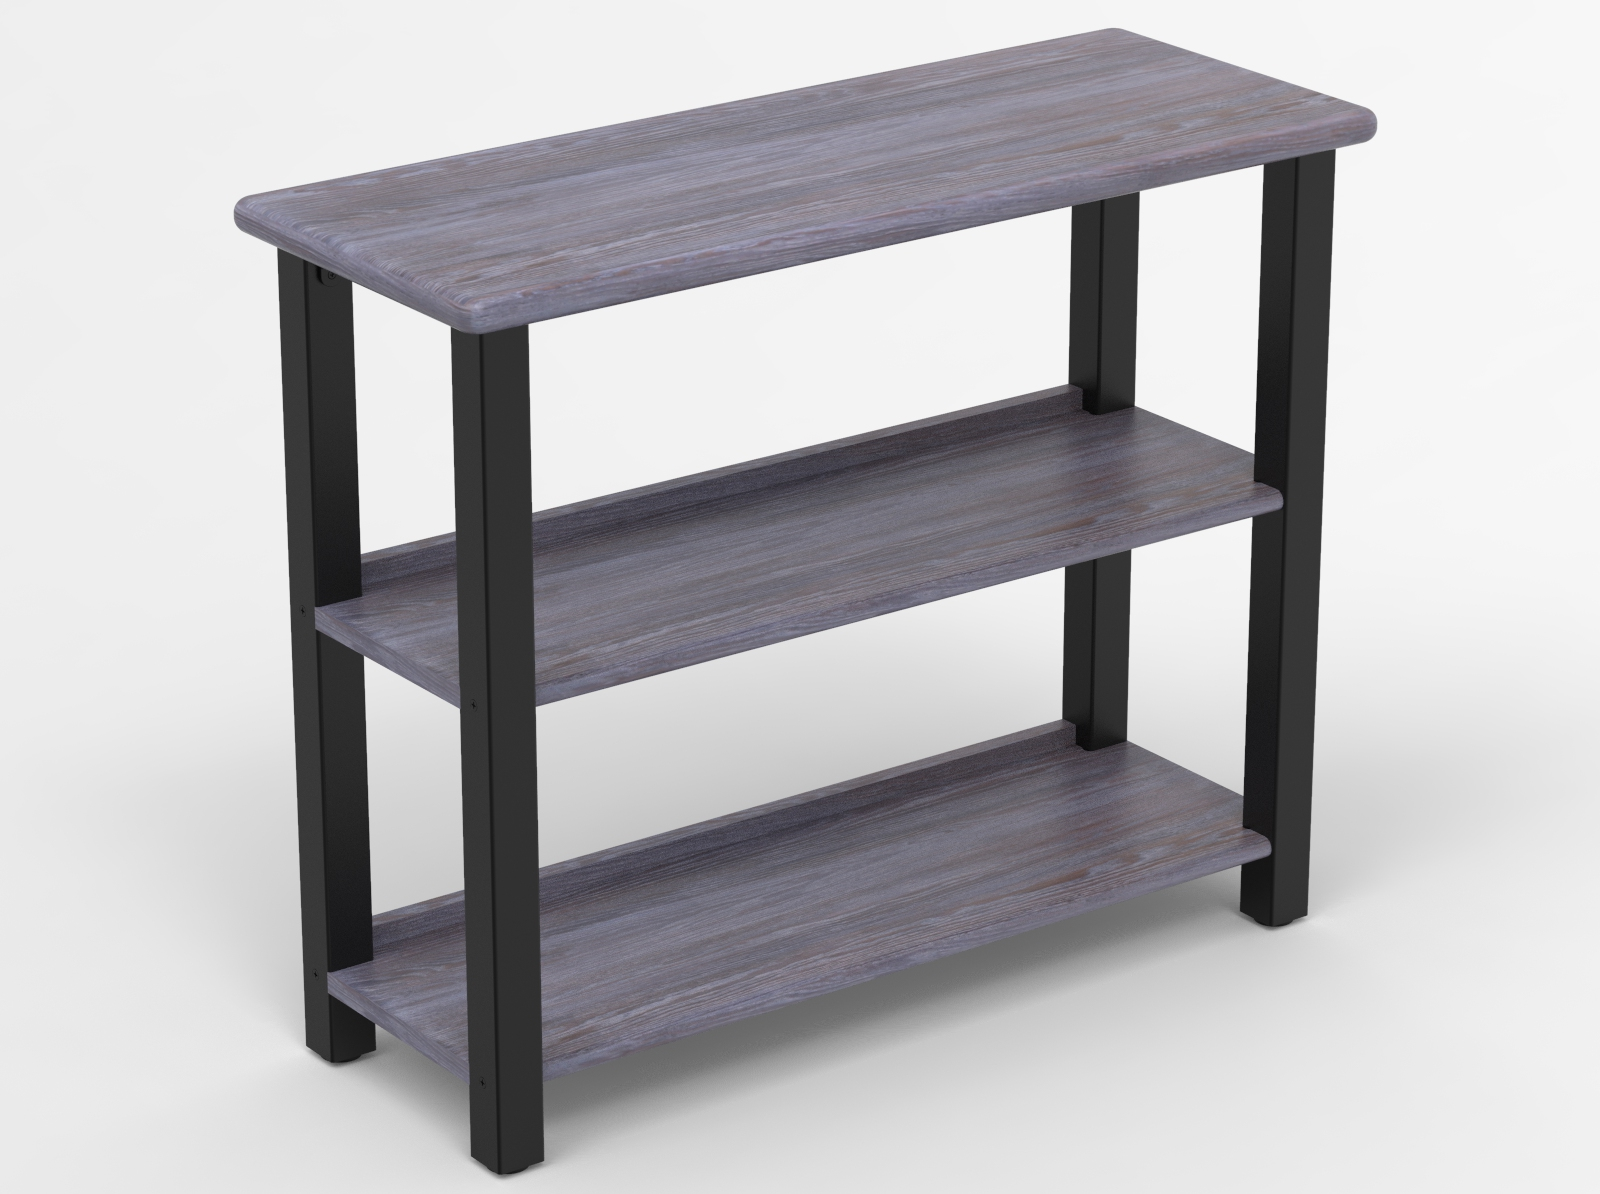 Bookshelf Table, Weathered Gray Oak